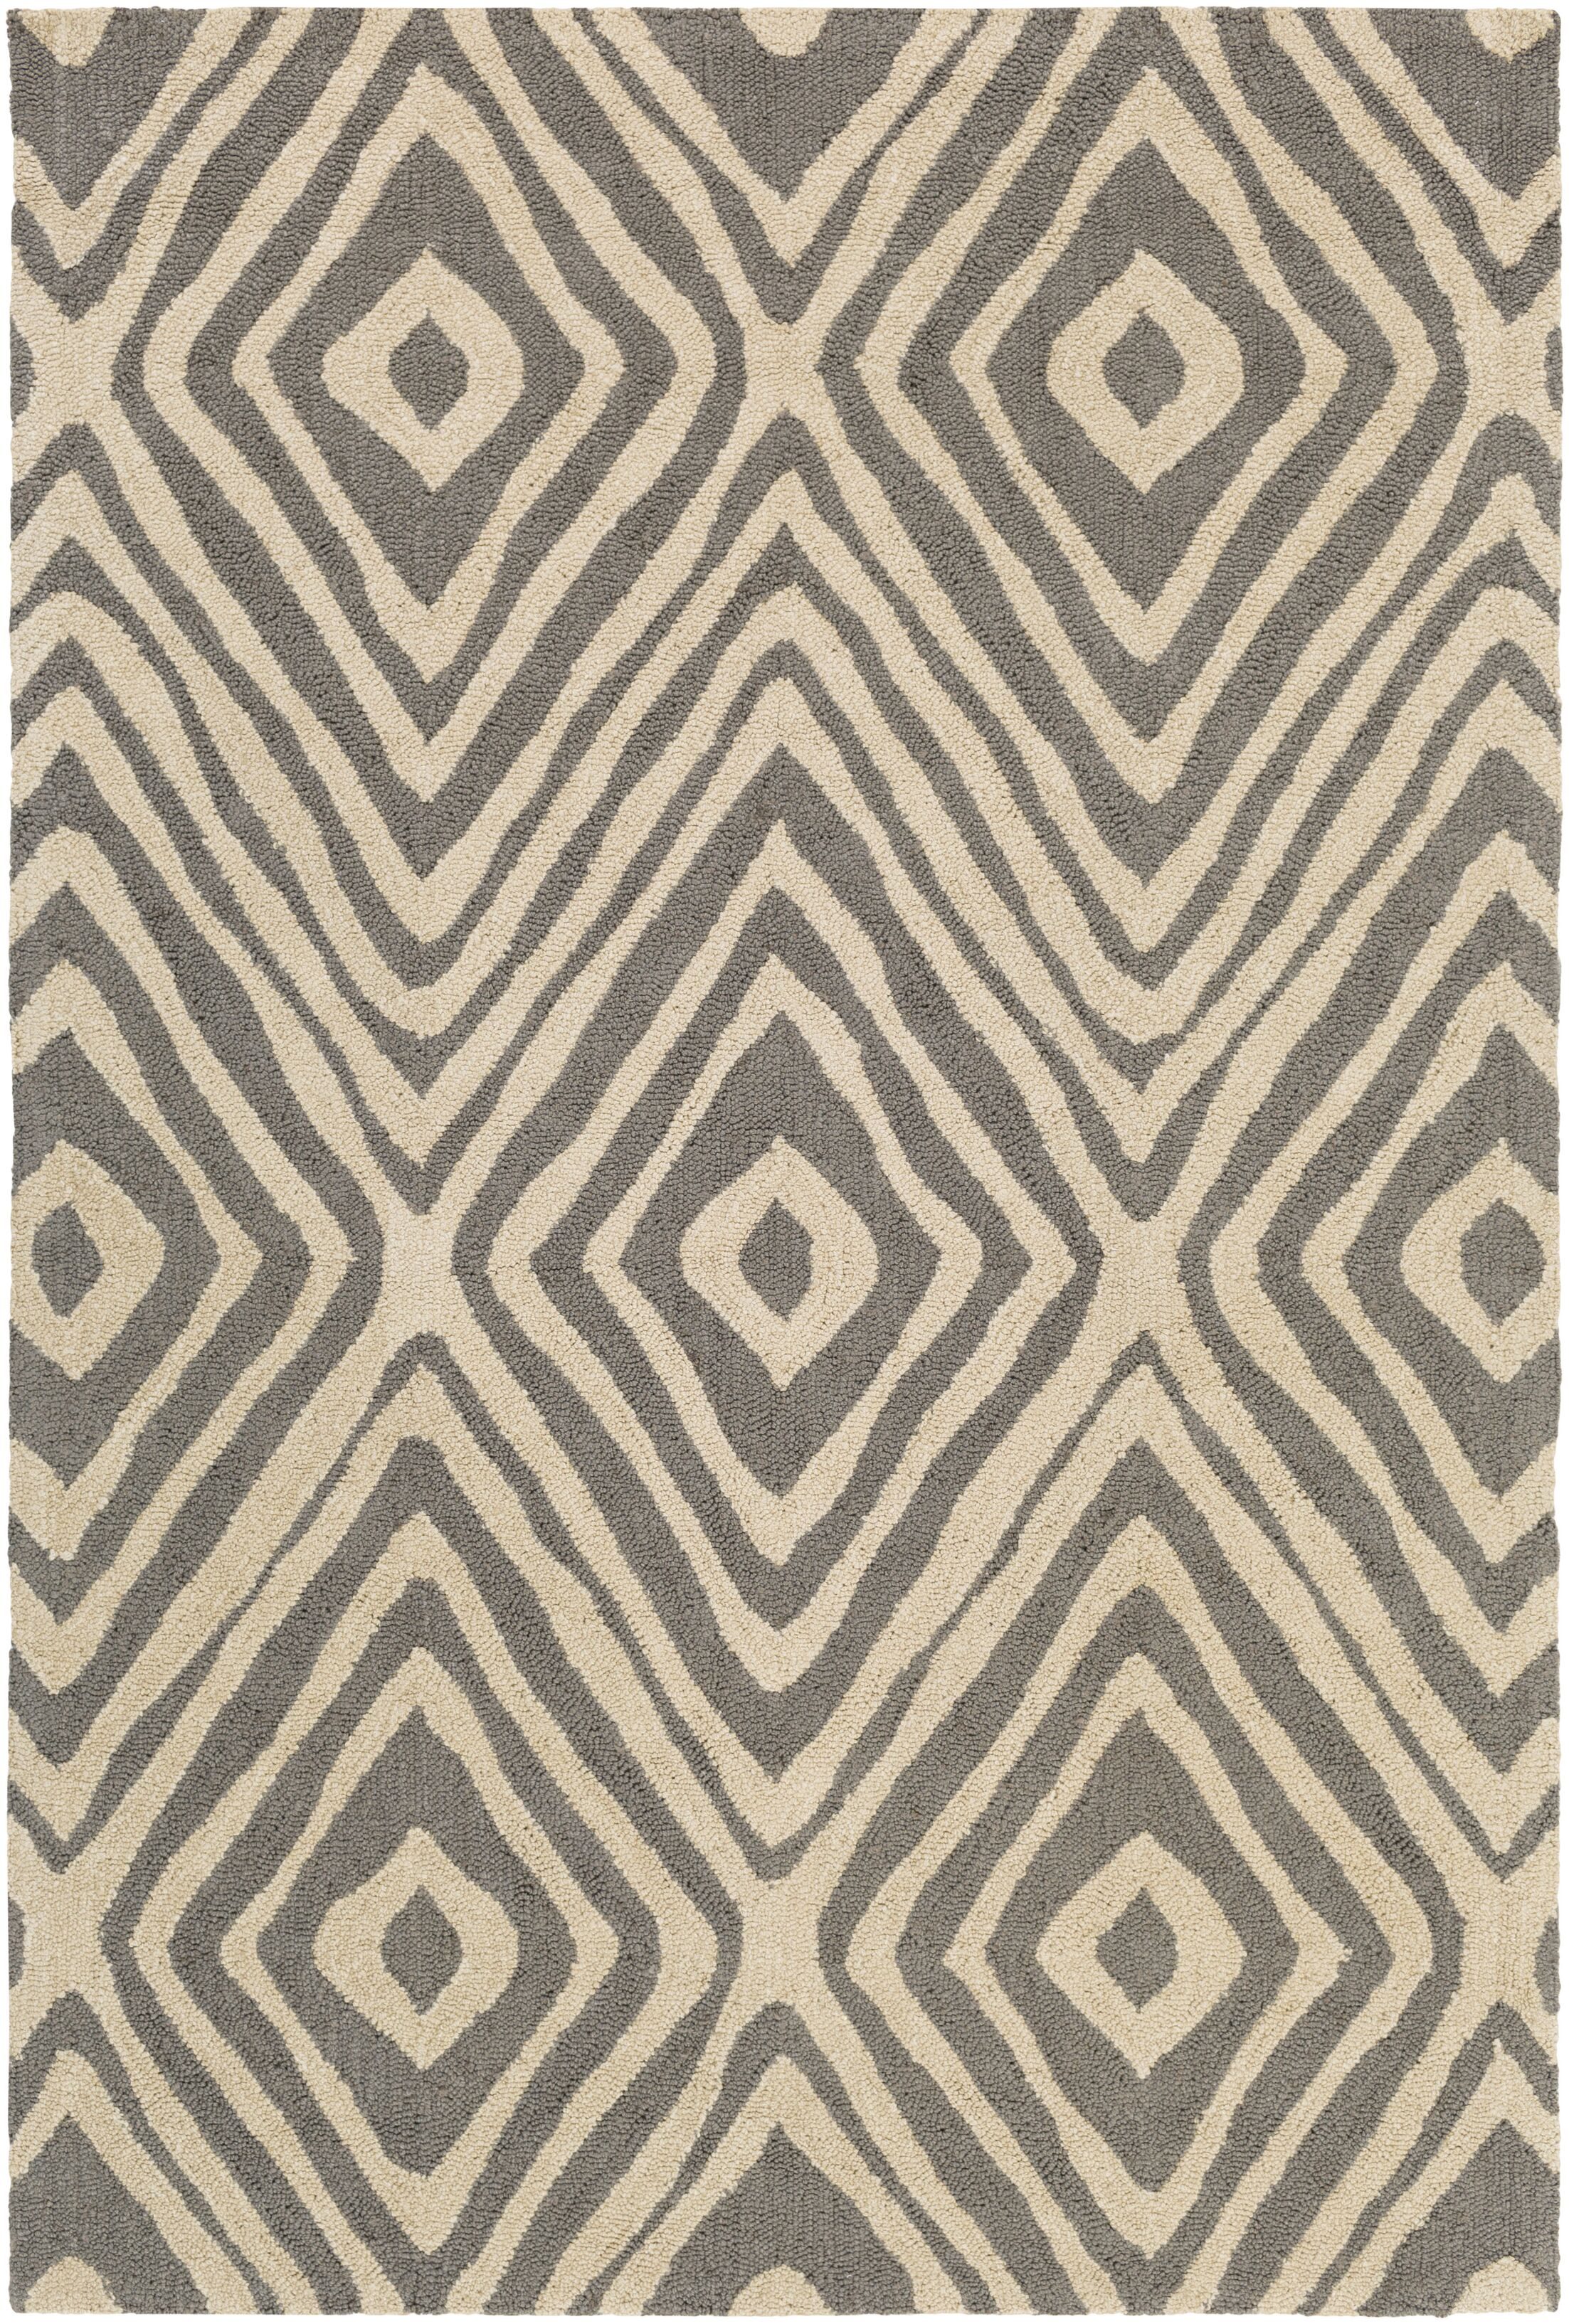 Juhasz Hand-Tufted Gray/Beige Area Rug Rug Size: Rectangle 5' x 7'6